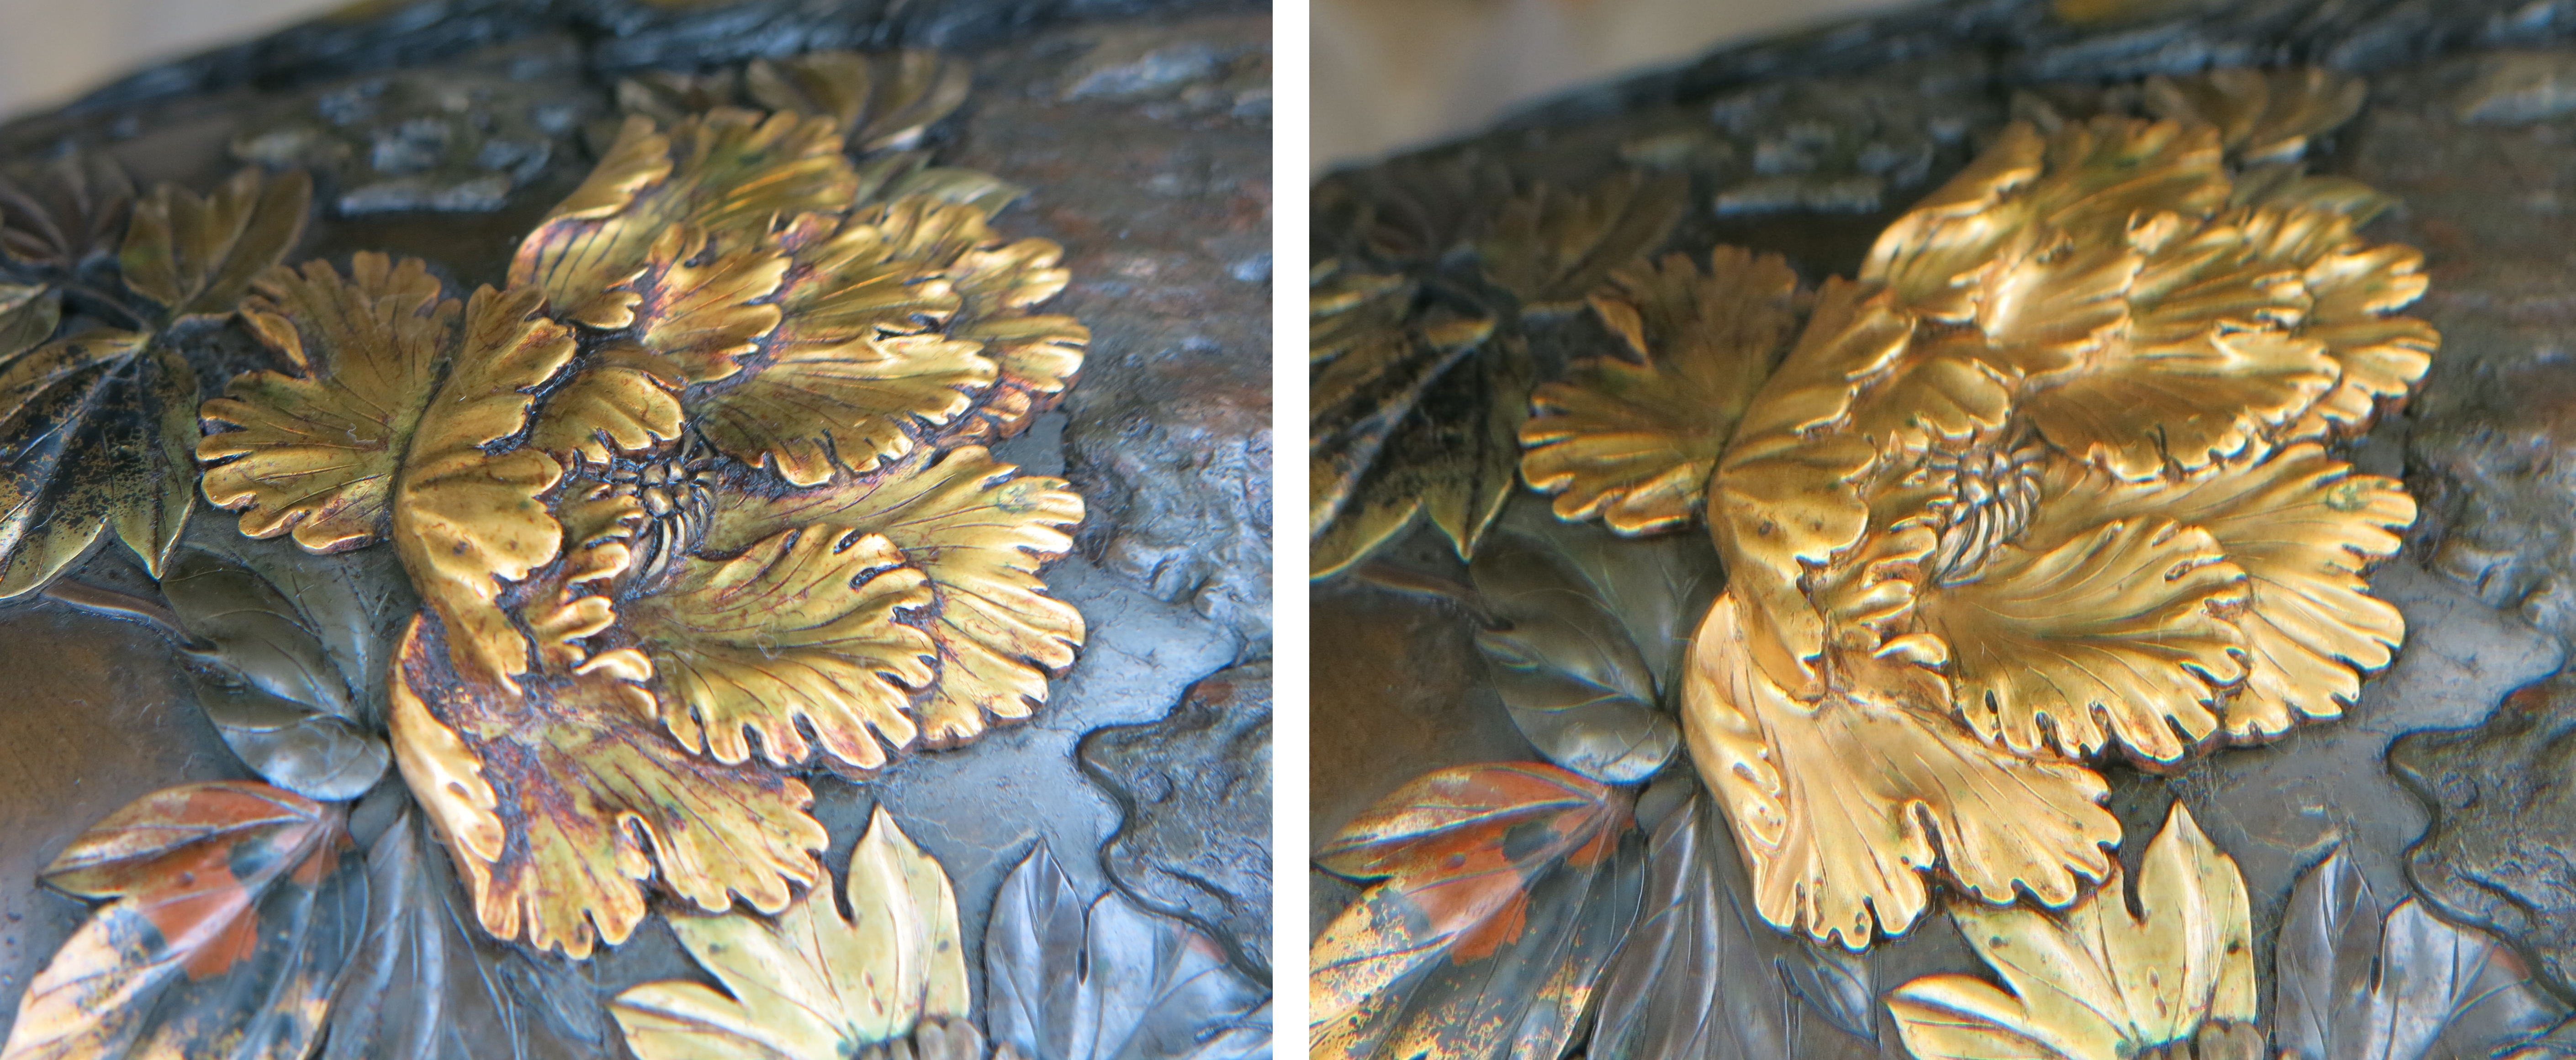 Left: Close up of a golden peony flower with a thick reddish-brown coating covering the recesses and a film over the remaining raised areas resulting in the dull appearance Right: Close up of the shiny golden peony flower.